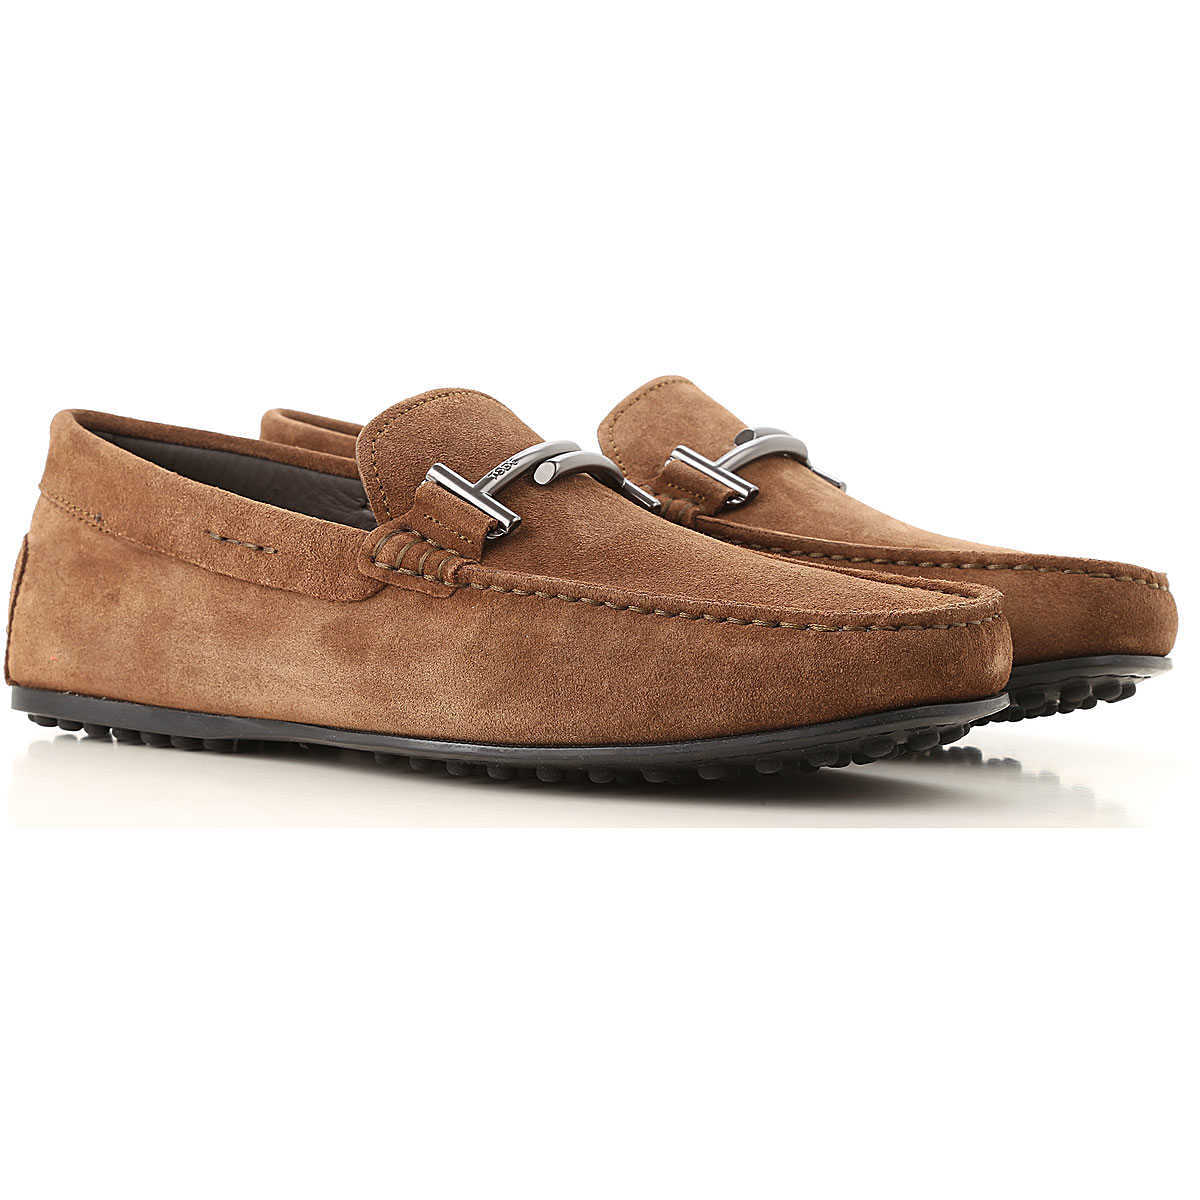 Tods Loafers for Men Beaver Brown Canada - GOOFASH - Mens LOAFERS